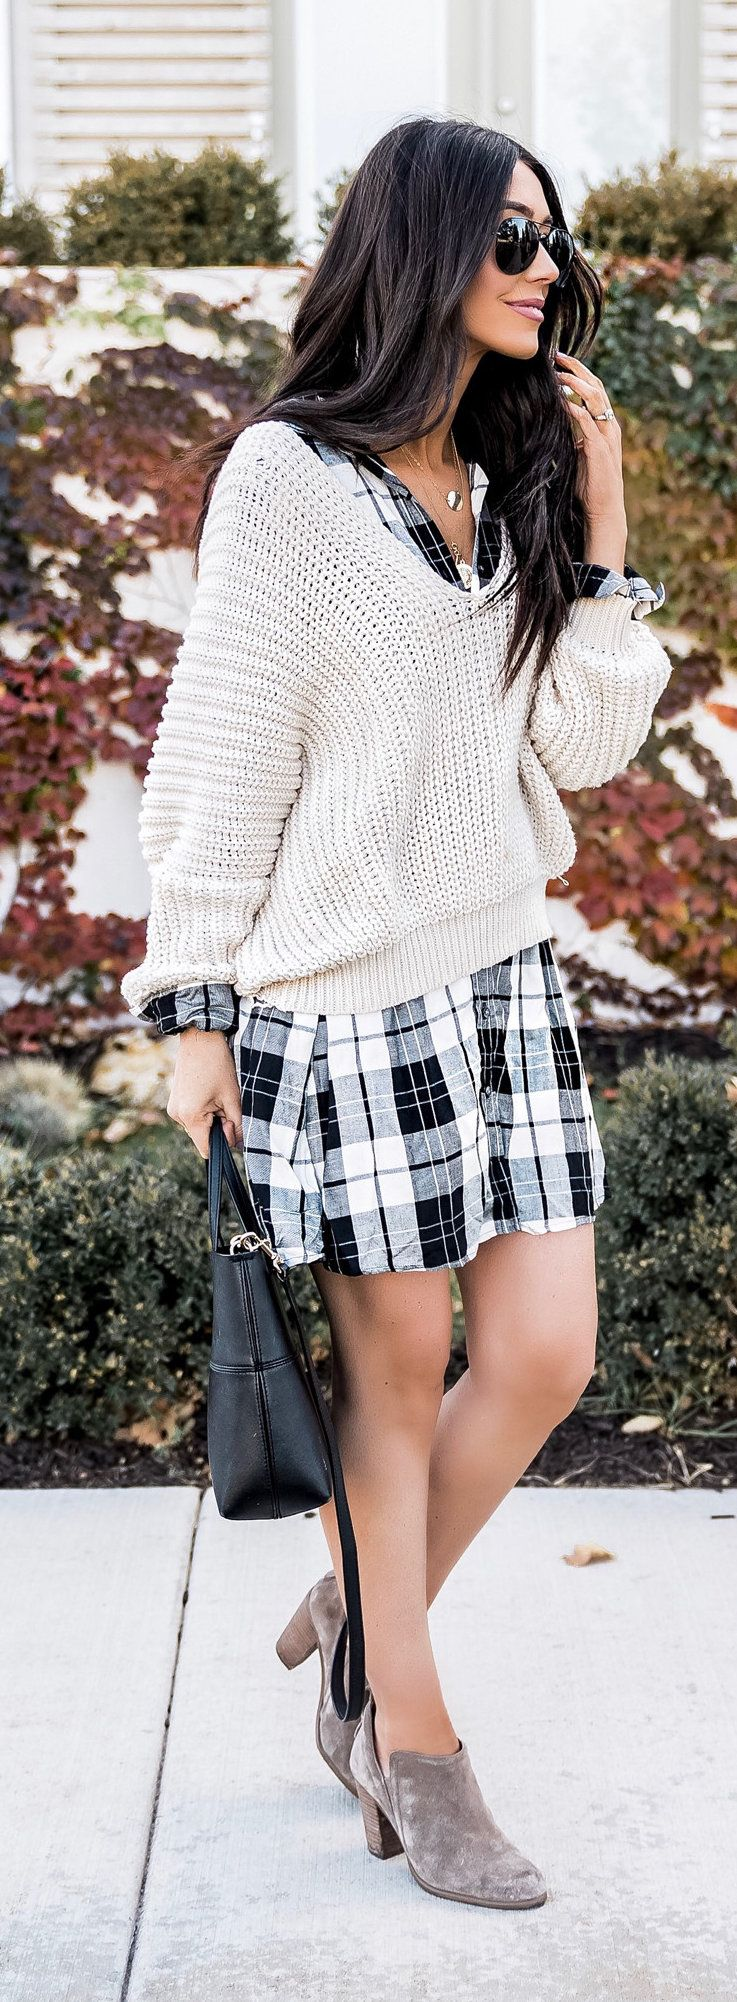 white knit sweater; black and white gingham mini dress